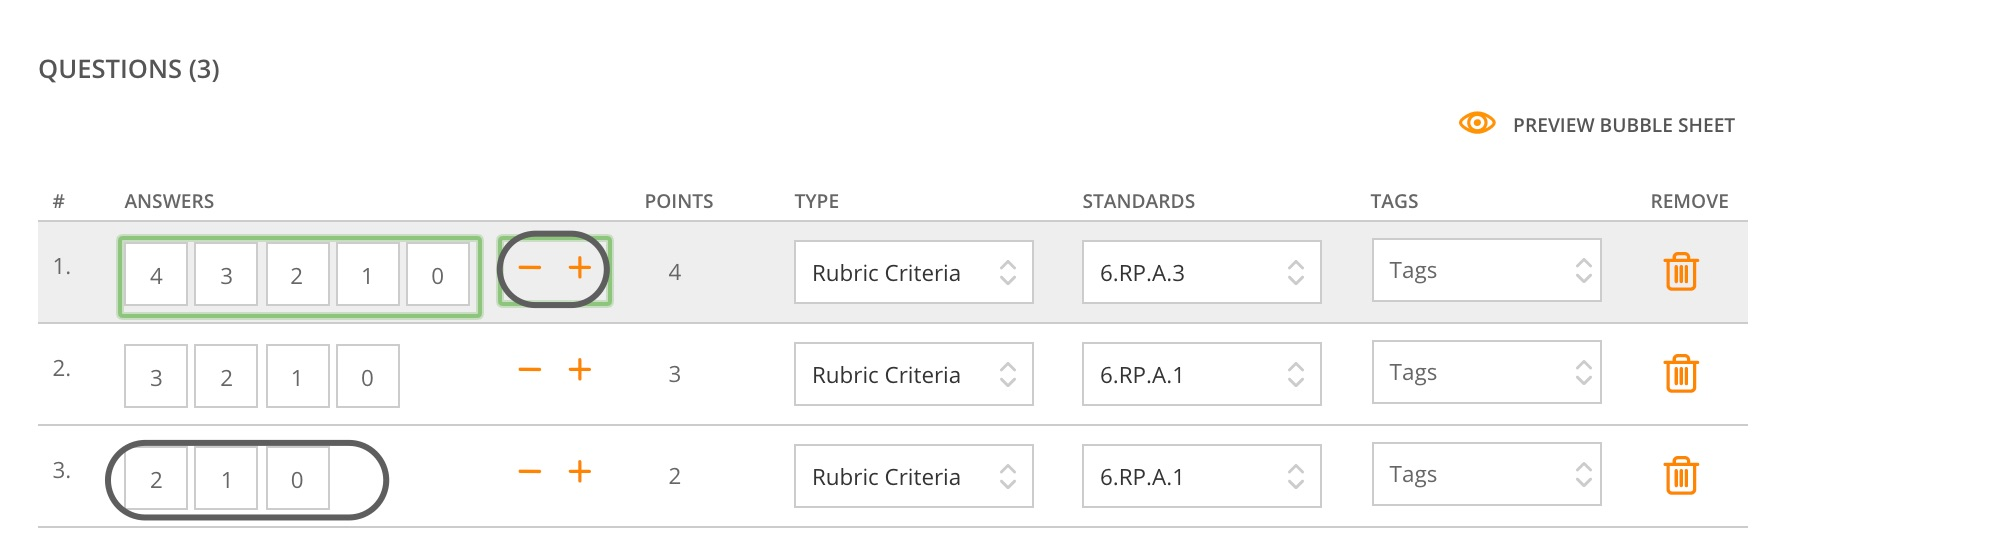 Rubric criteria question creation